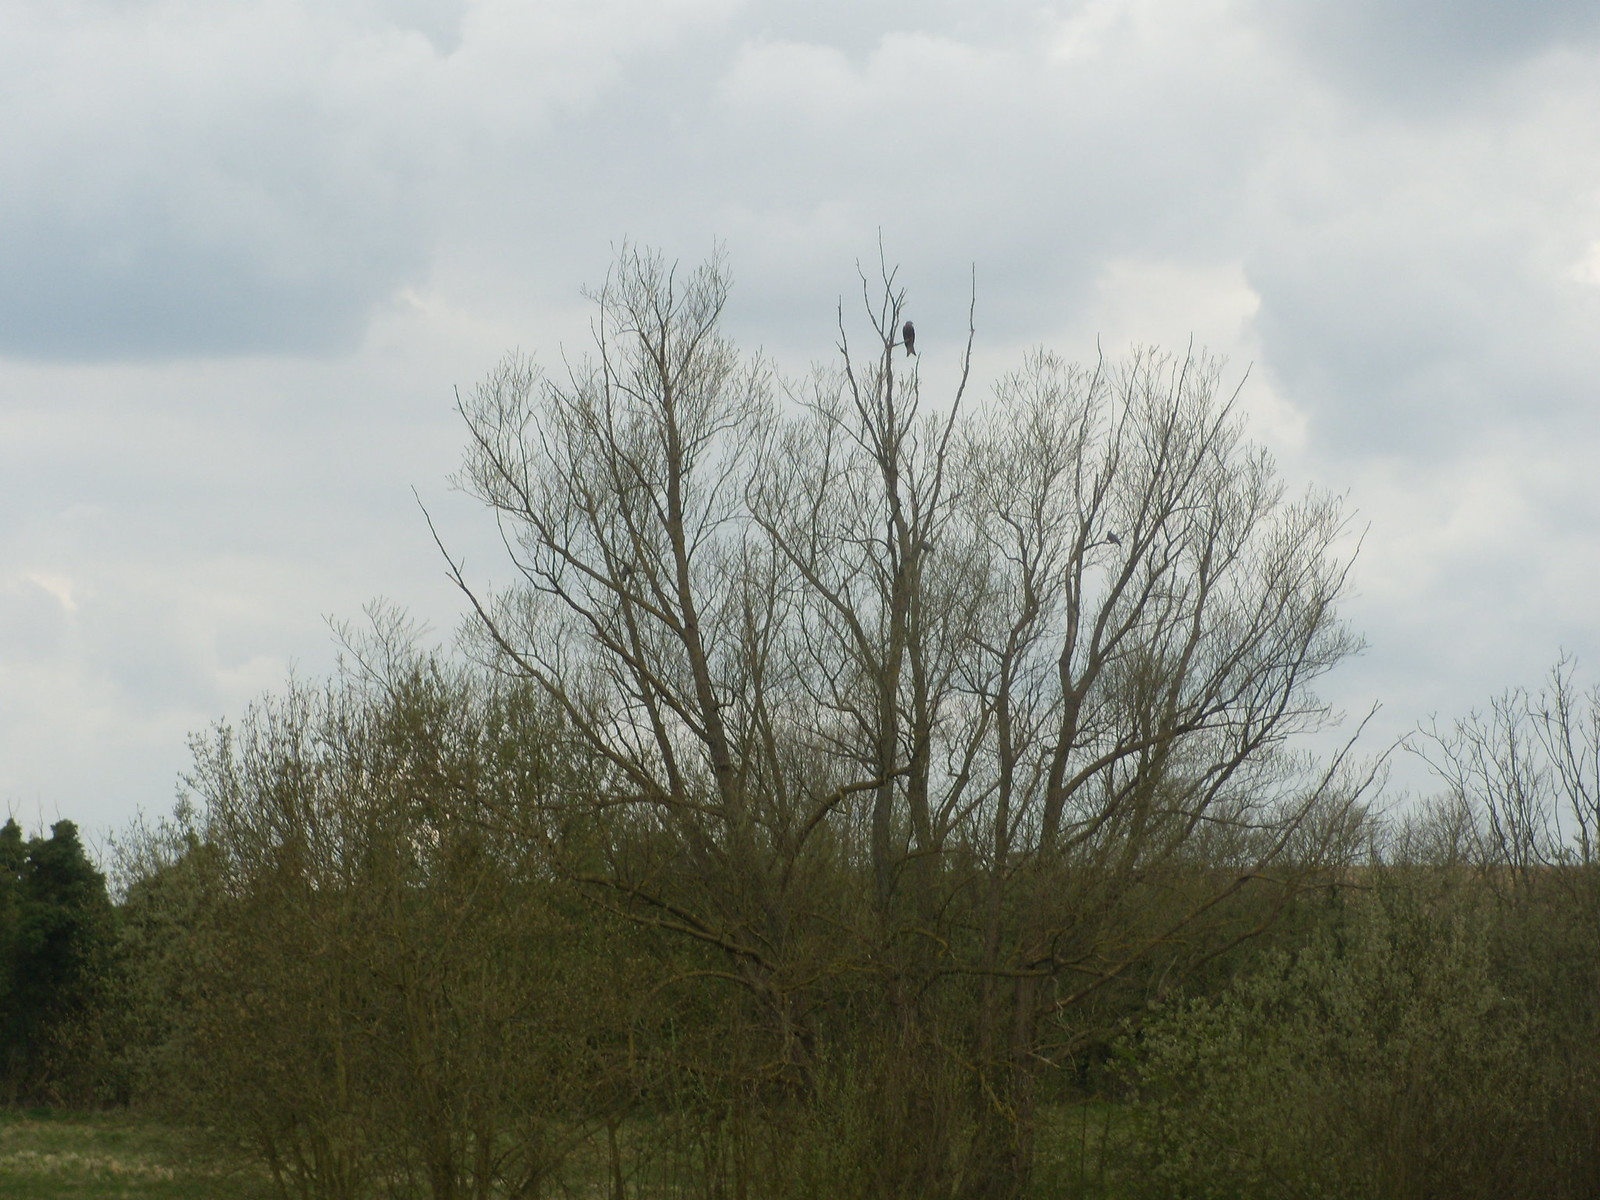 Red Kite in a tree Marlow Circular